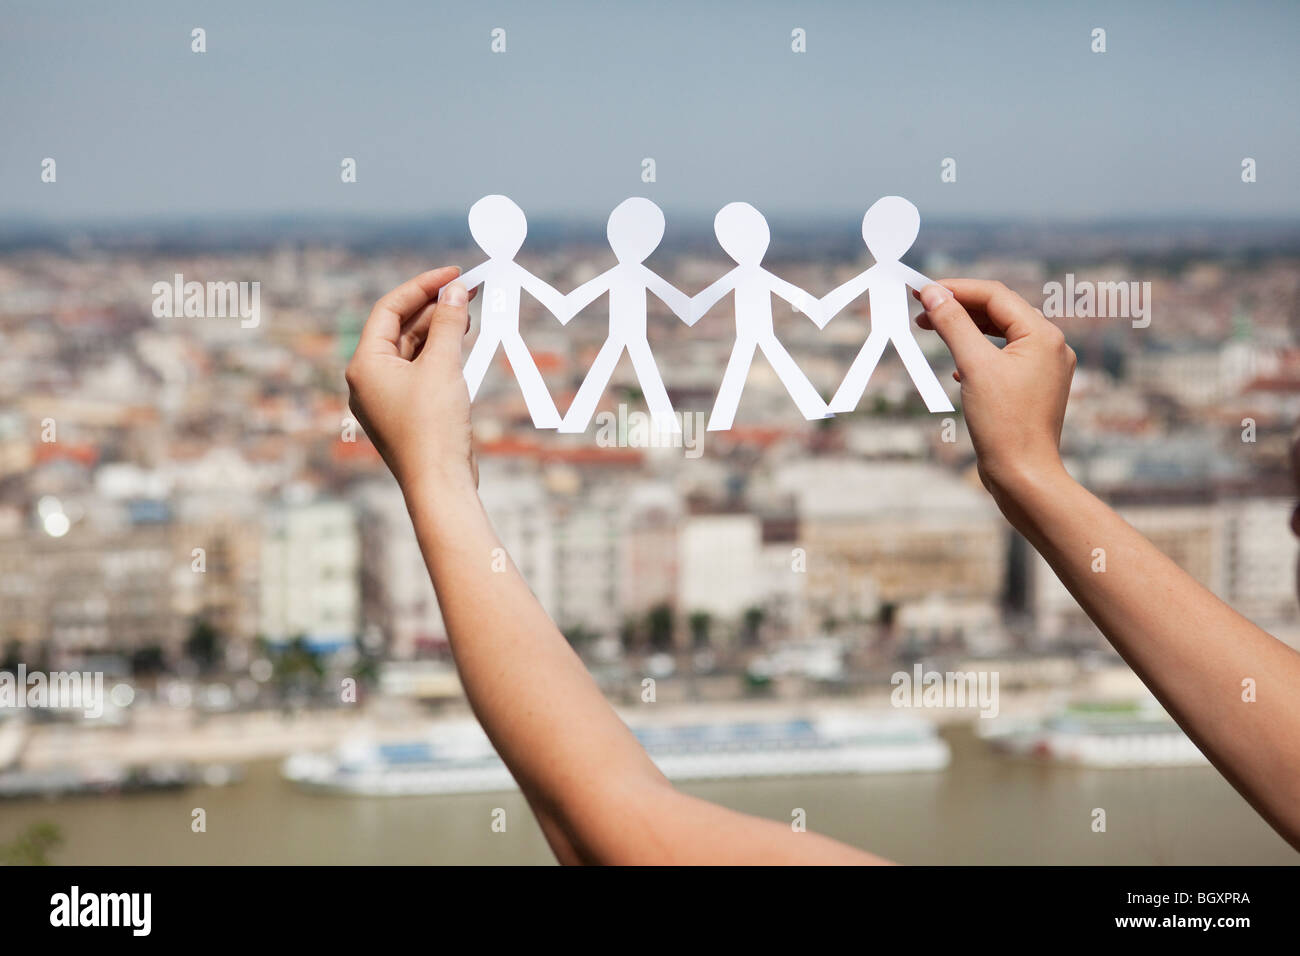 Arms cut-out paper people - Stock Image